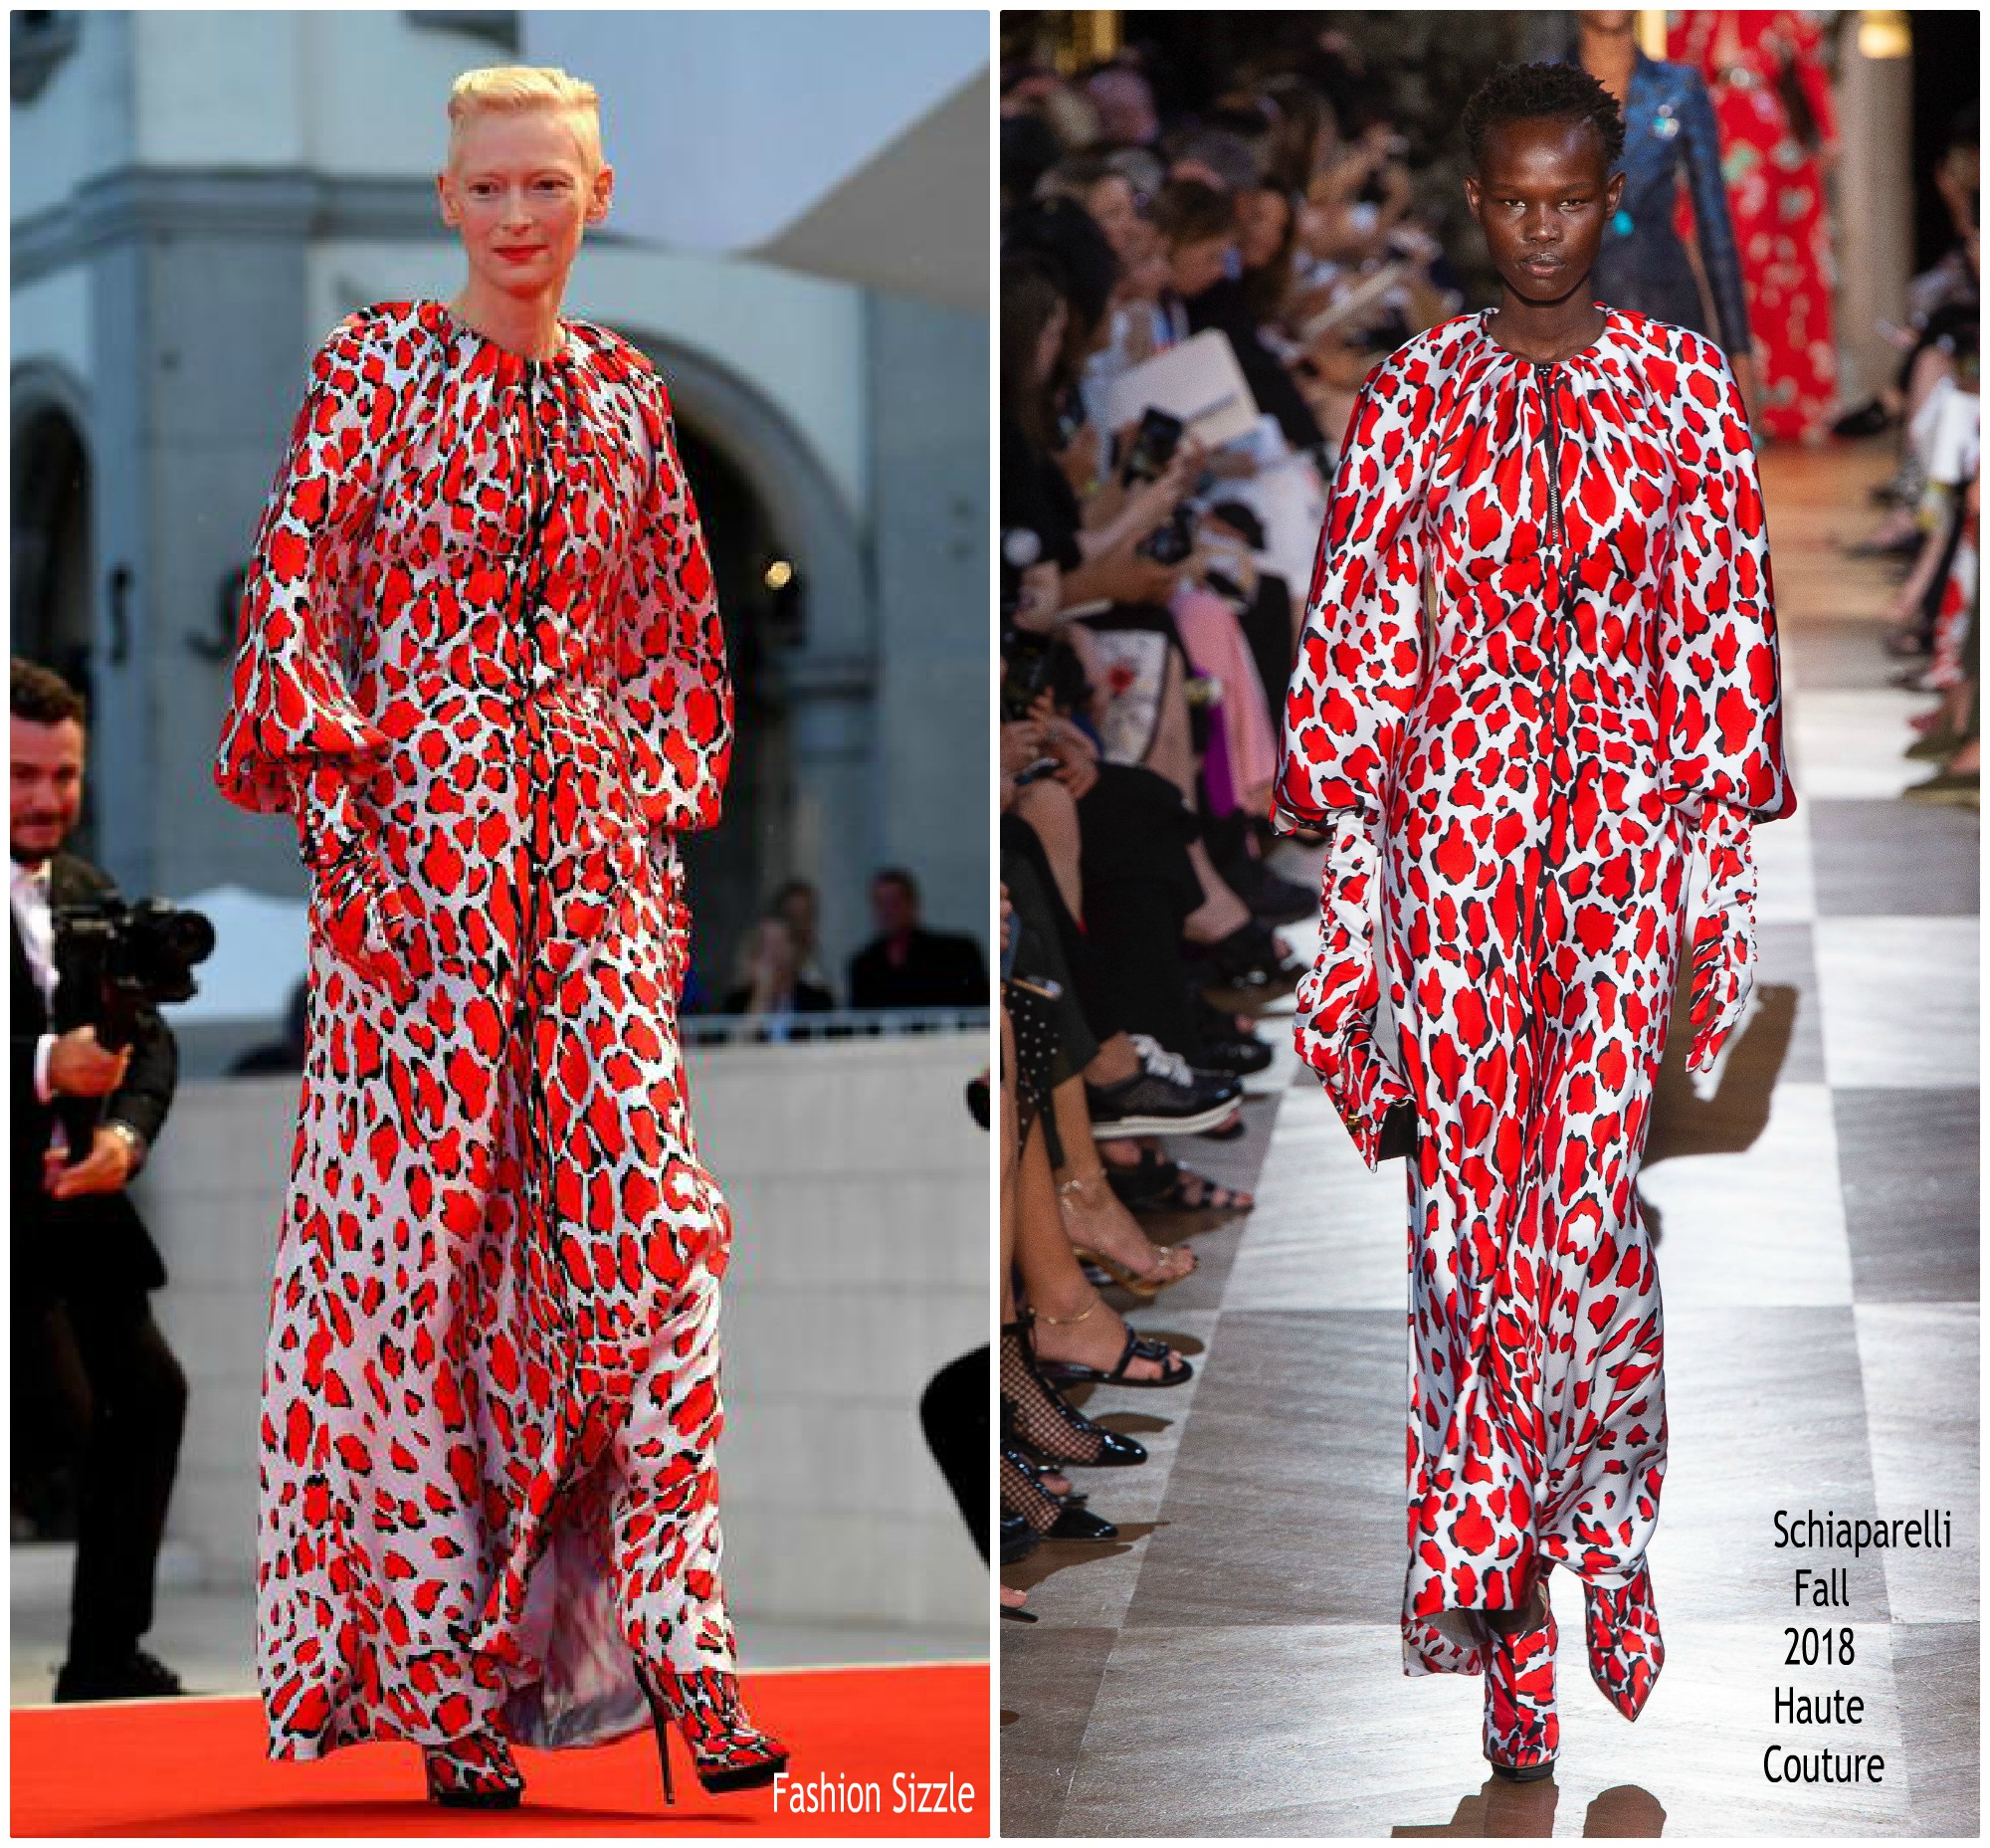 tilda-swinton-in-schiaparelli-haute-couture-at-eternitys-gate=venice-film-festival-premiere